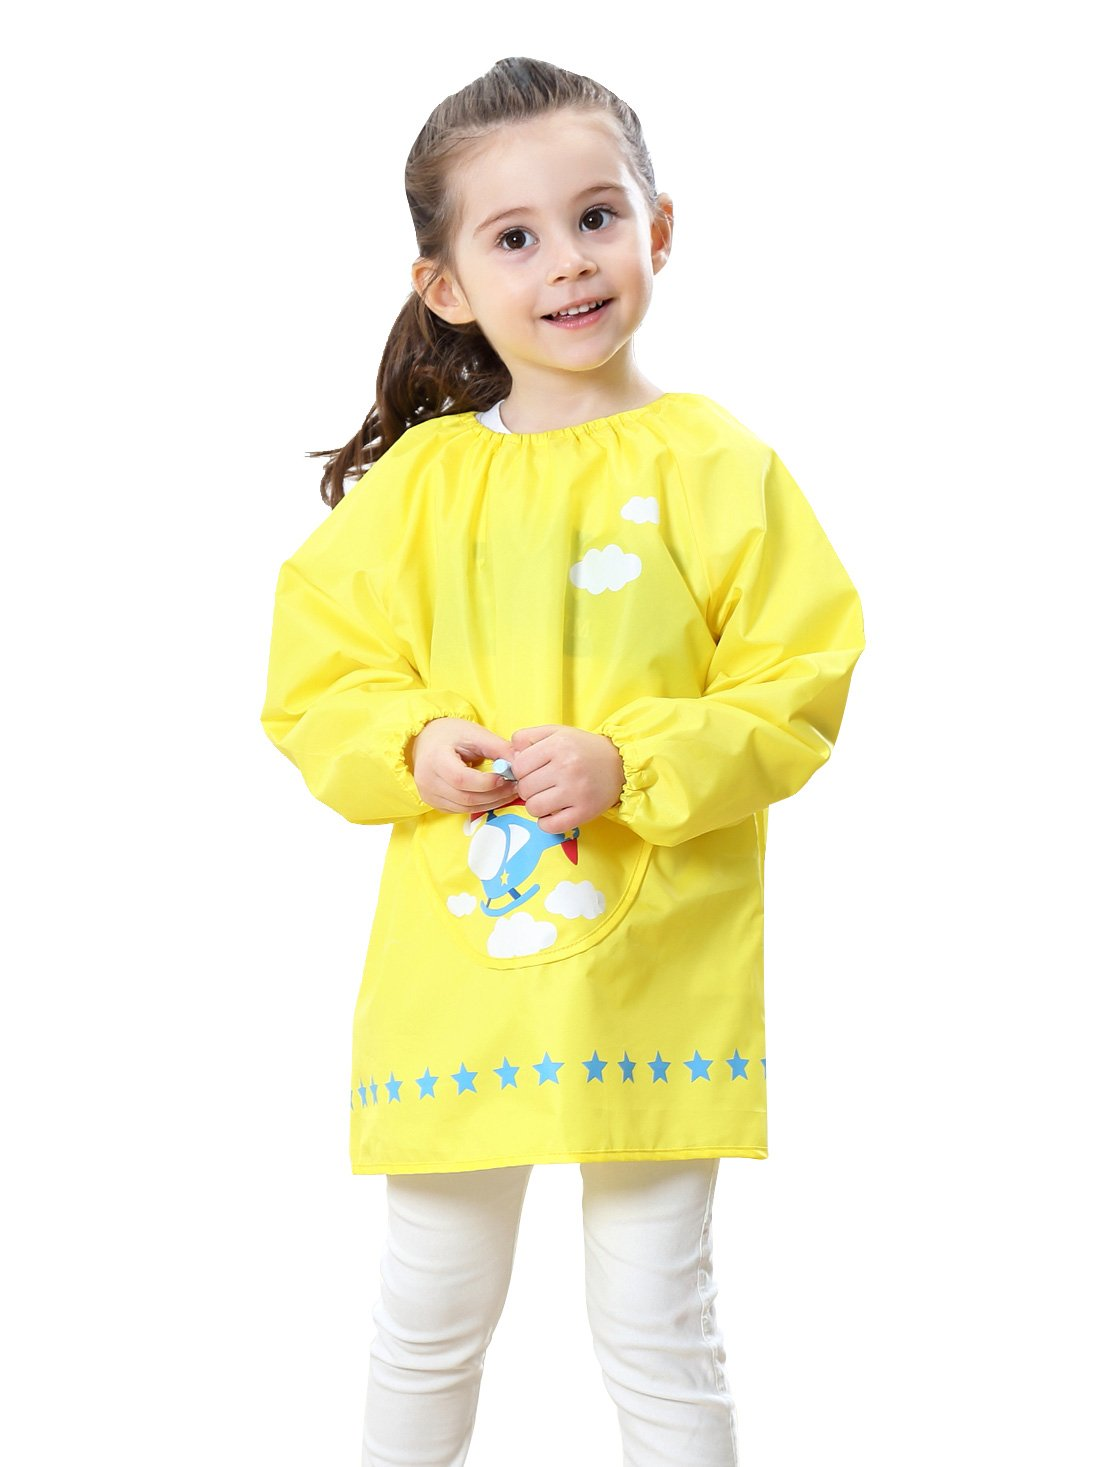 Kids Multifunctional Painting Smock Cute Plane Printing Children's Waterproof Pullover Long Sleeve Bib with Pocket Drawing Apron Yellow 4-6 T